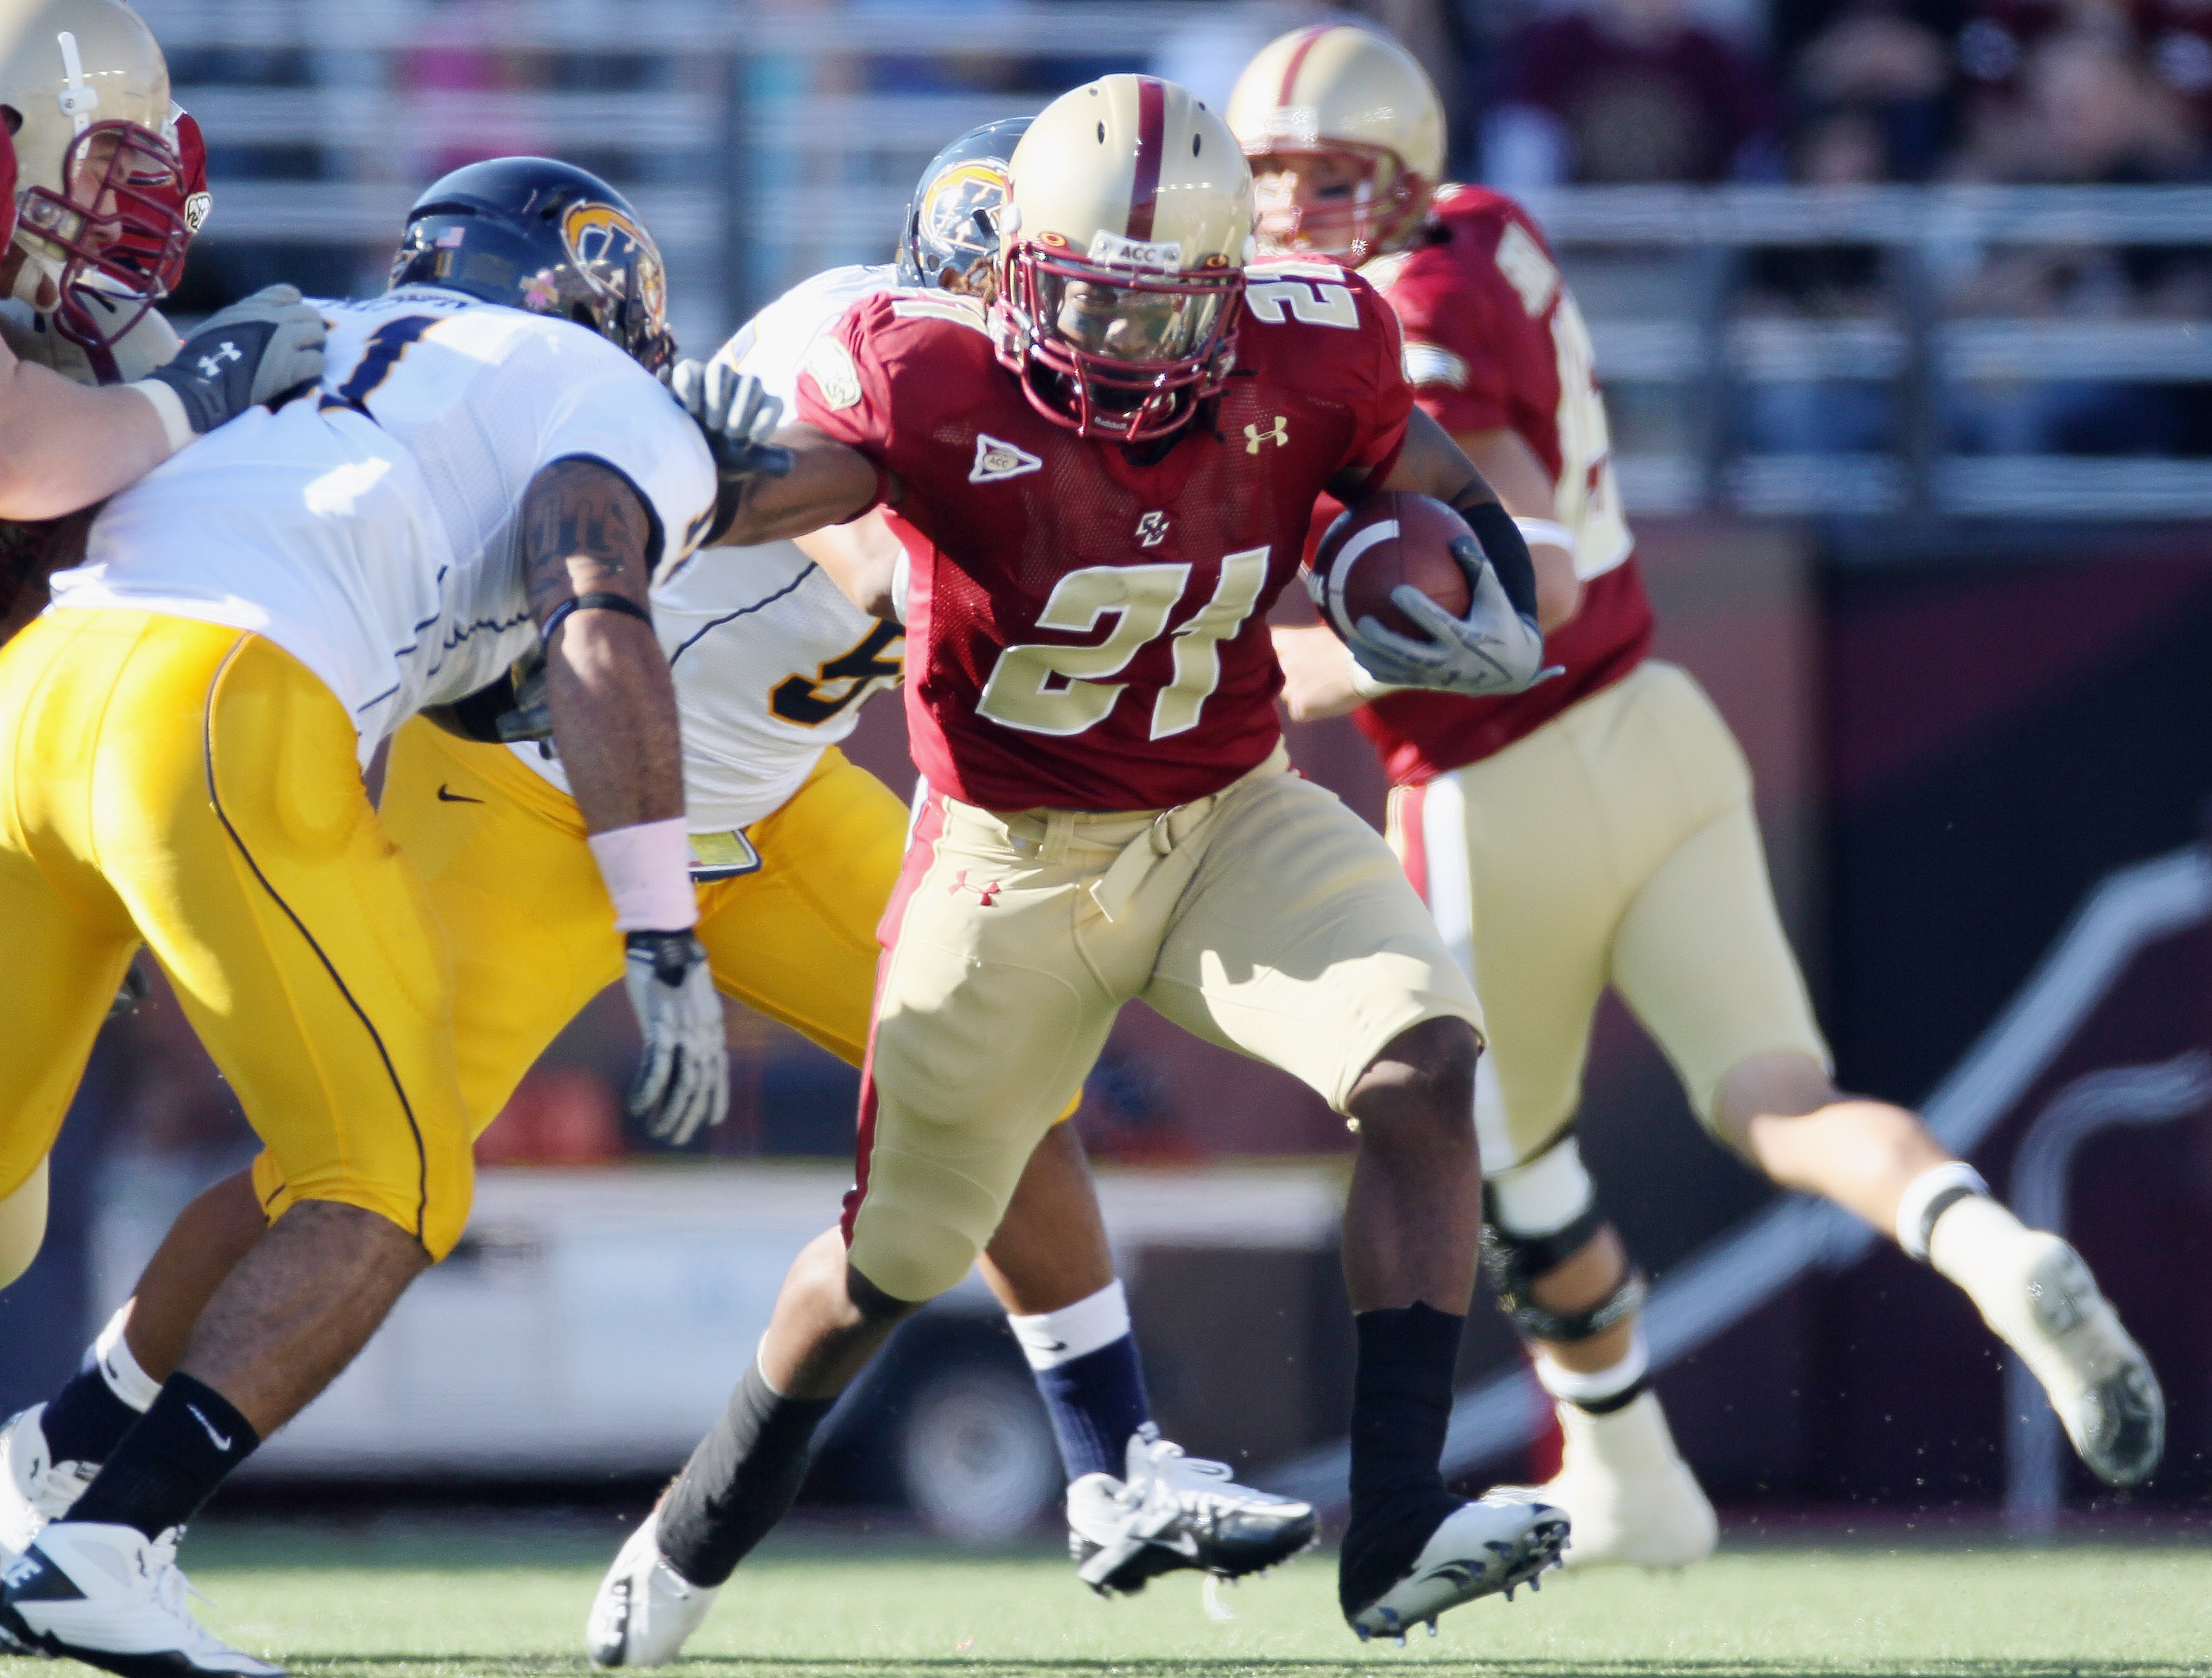 CHESTNUT HILL, MA - SEPTEMBER 11:   Sterlin Phifer #21 of the Boston College Eagles carries the ball as  Cobrani Mixon #11 of the Kent State Golden Flashes defends on September 11, 2010 at Alumni Stadium in Chestnut Hill, Massachusetts. Boston College def